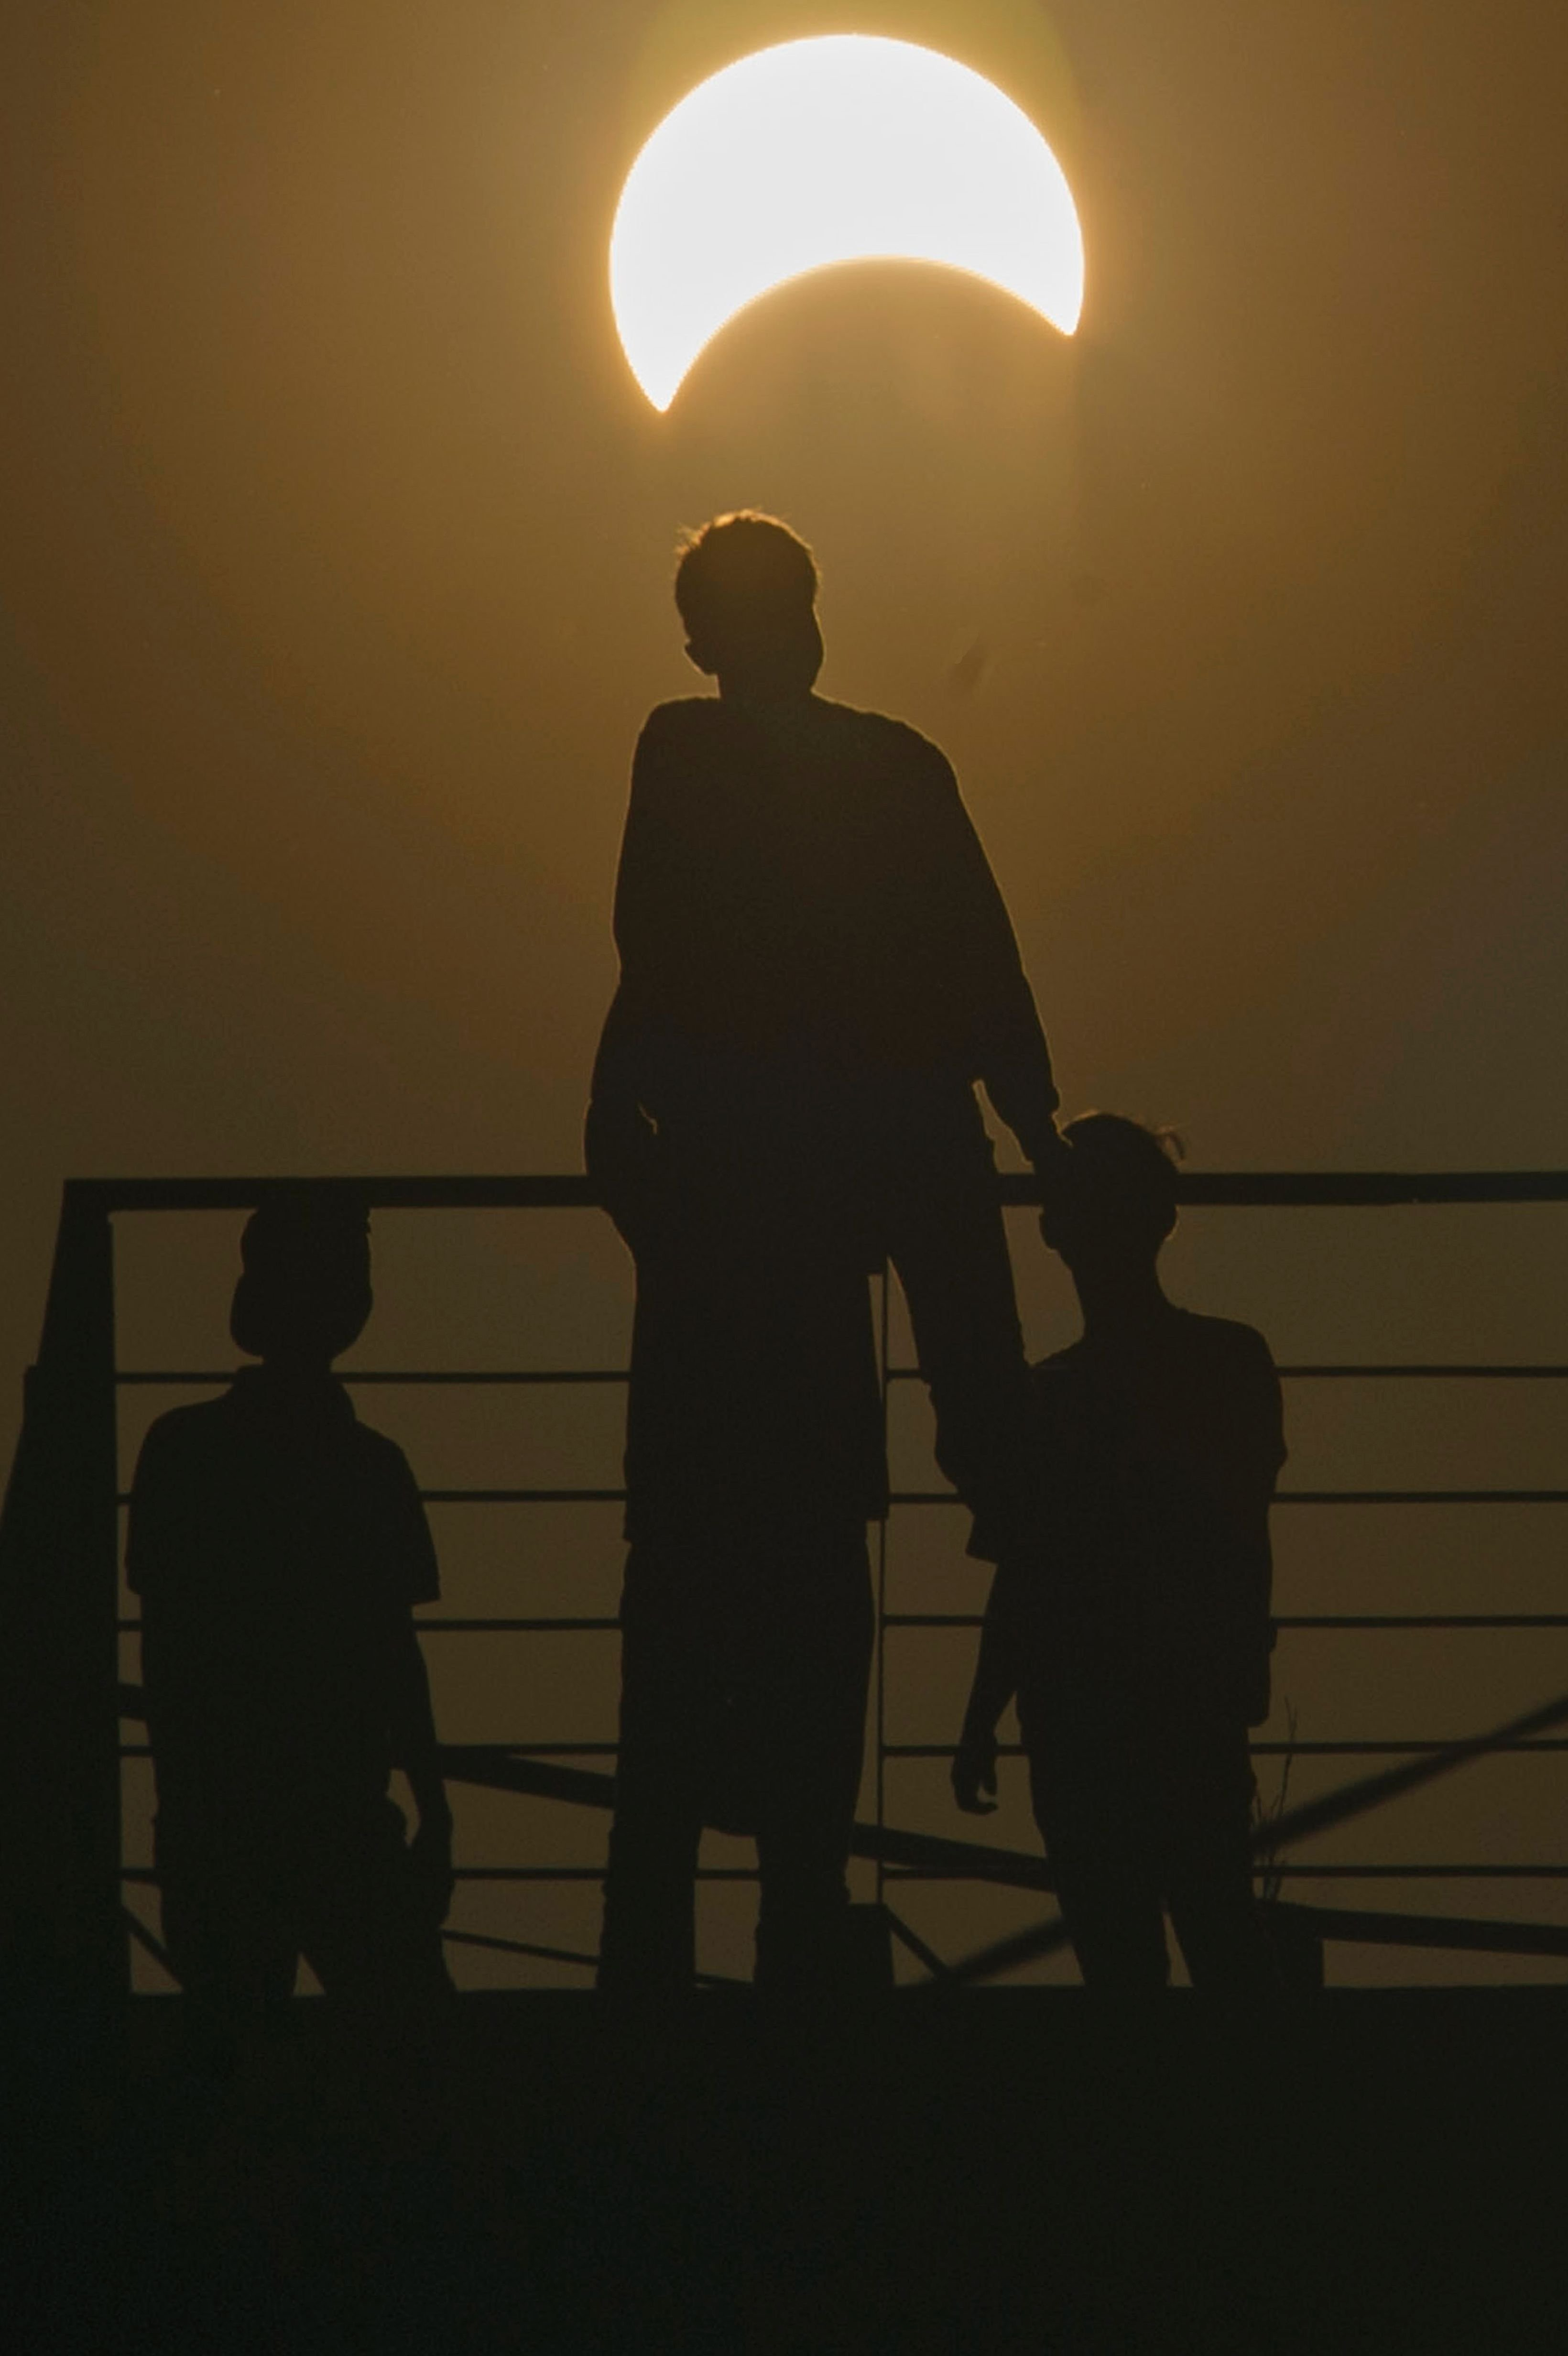 Acehnese men watch the total solar eclipse in Banda Aceh on March 9.